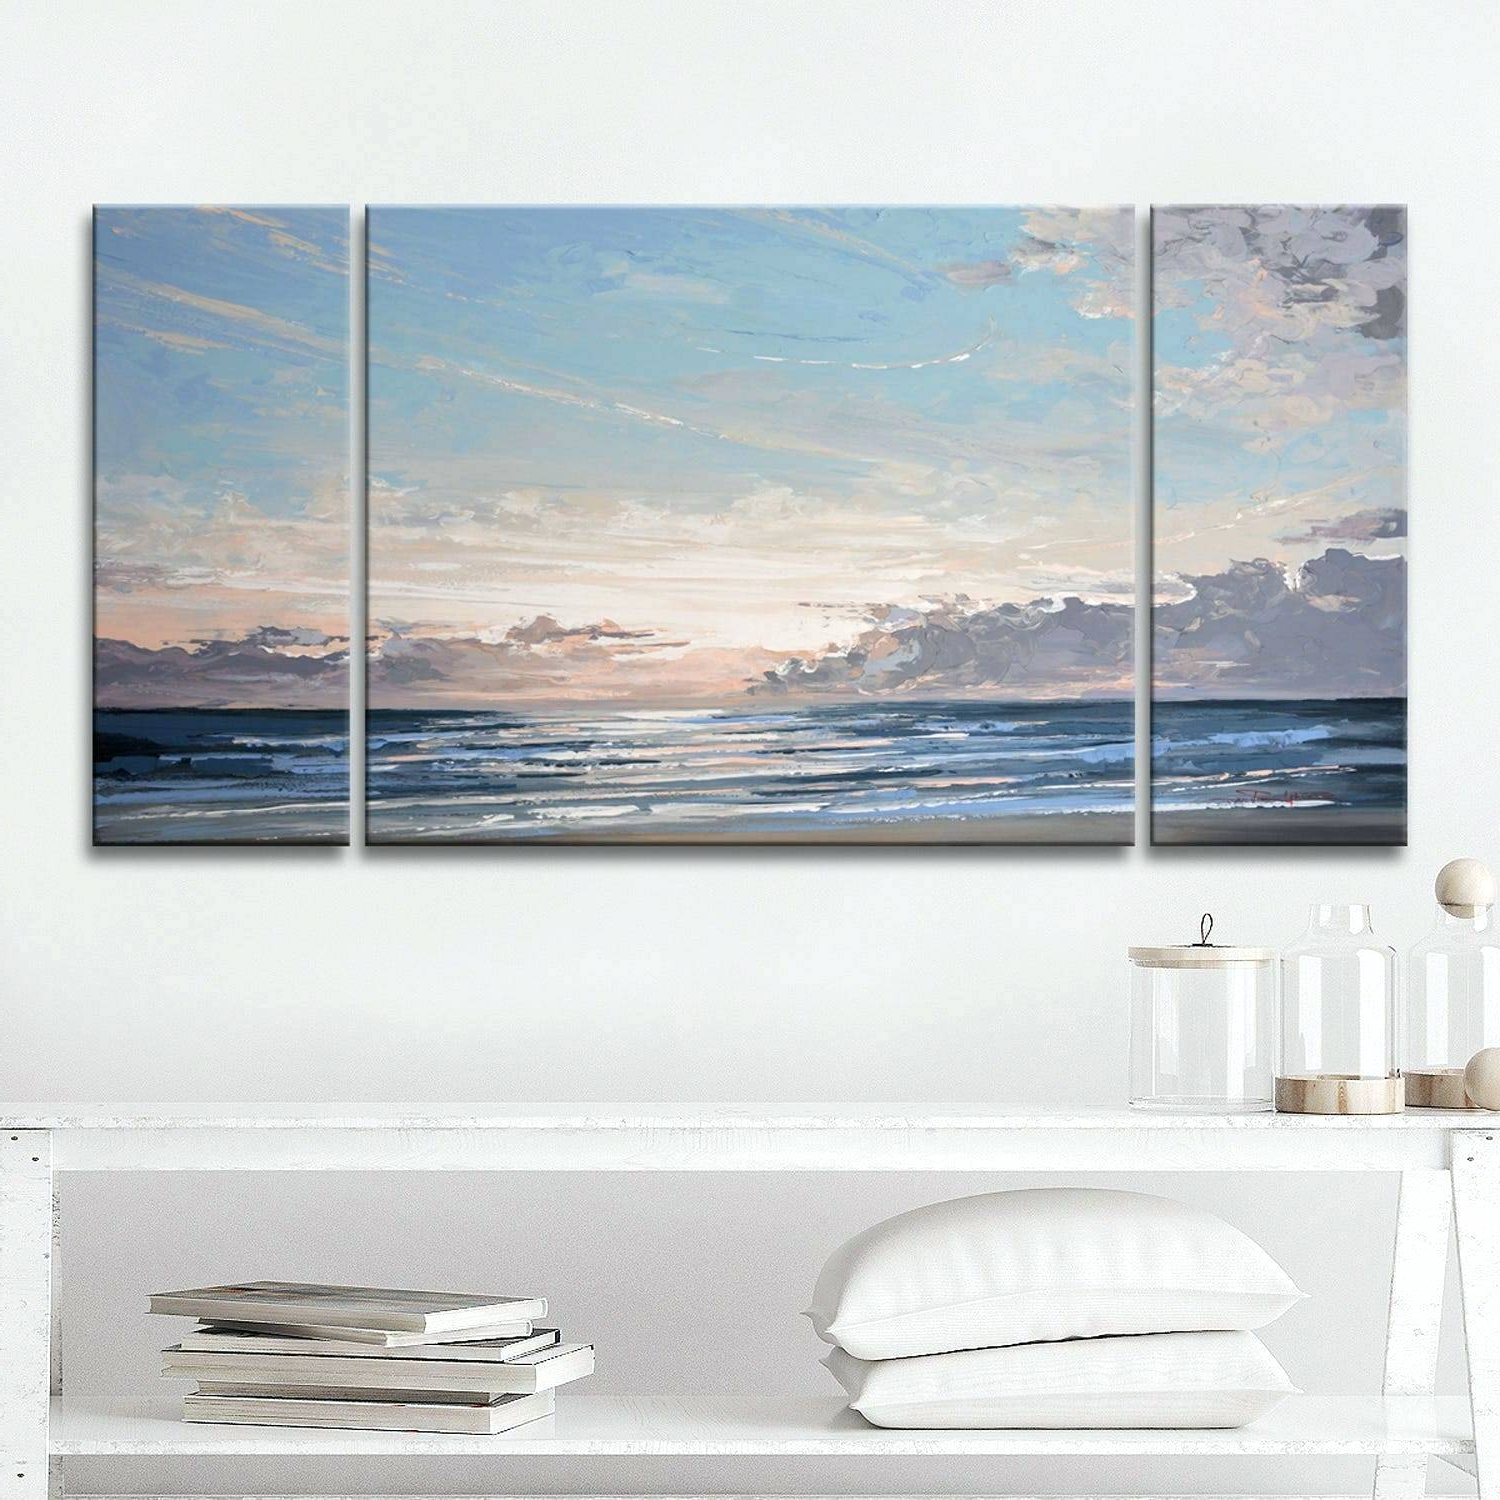 3 Piece Canvas Set Walmart Wall Art Large Abstract Sets Sea Stone Intended For Favorite 3 Piece Wall Decor Sets By Wrought Studio (View 16 of 20)